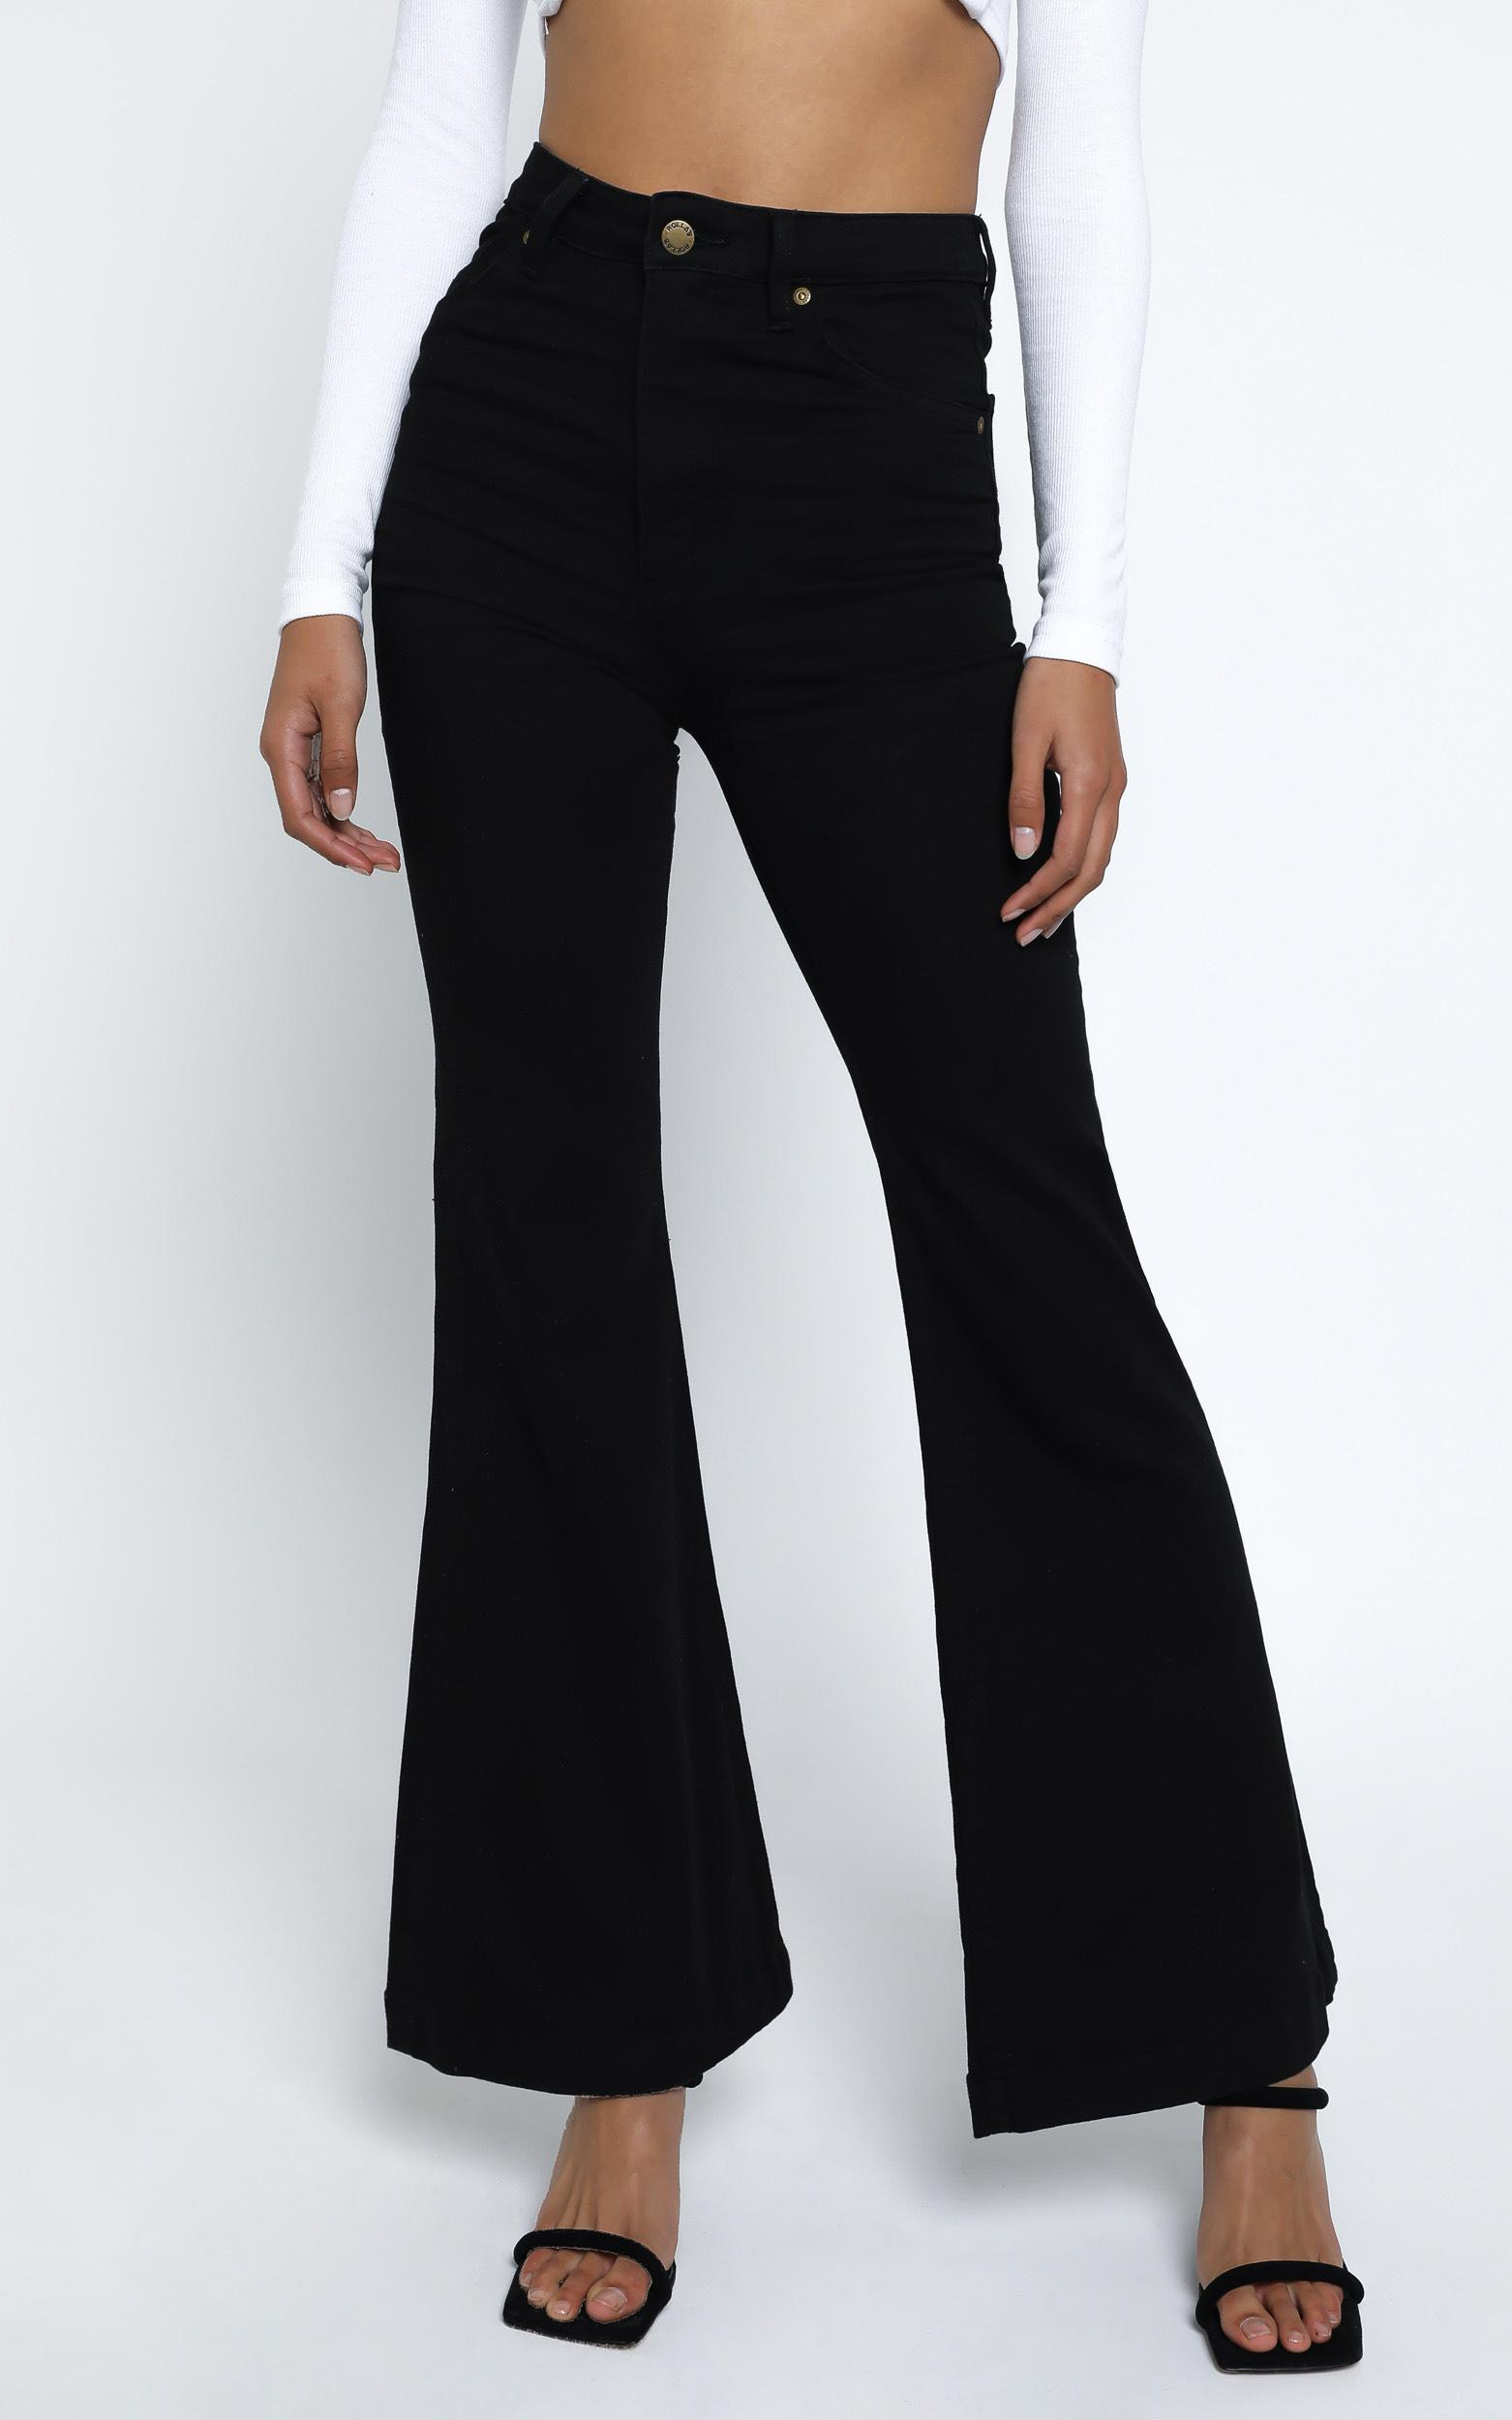 Rollas - Eastcoast Denim Flare in Galaxy Black - 14 (XL), BLK1, hi-res image number null